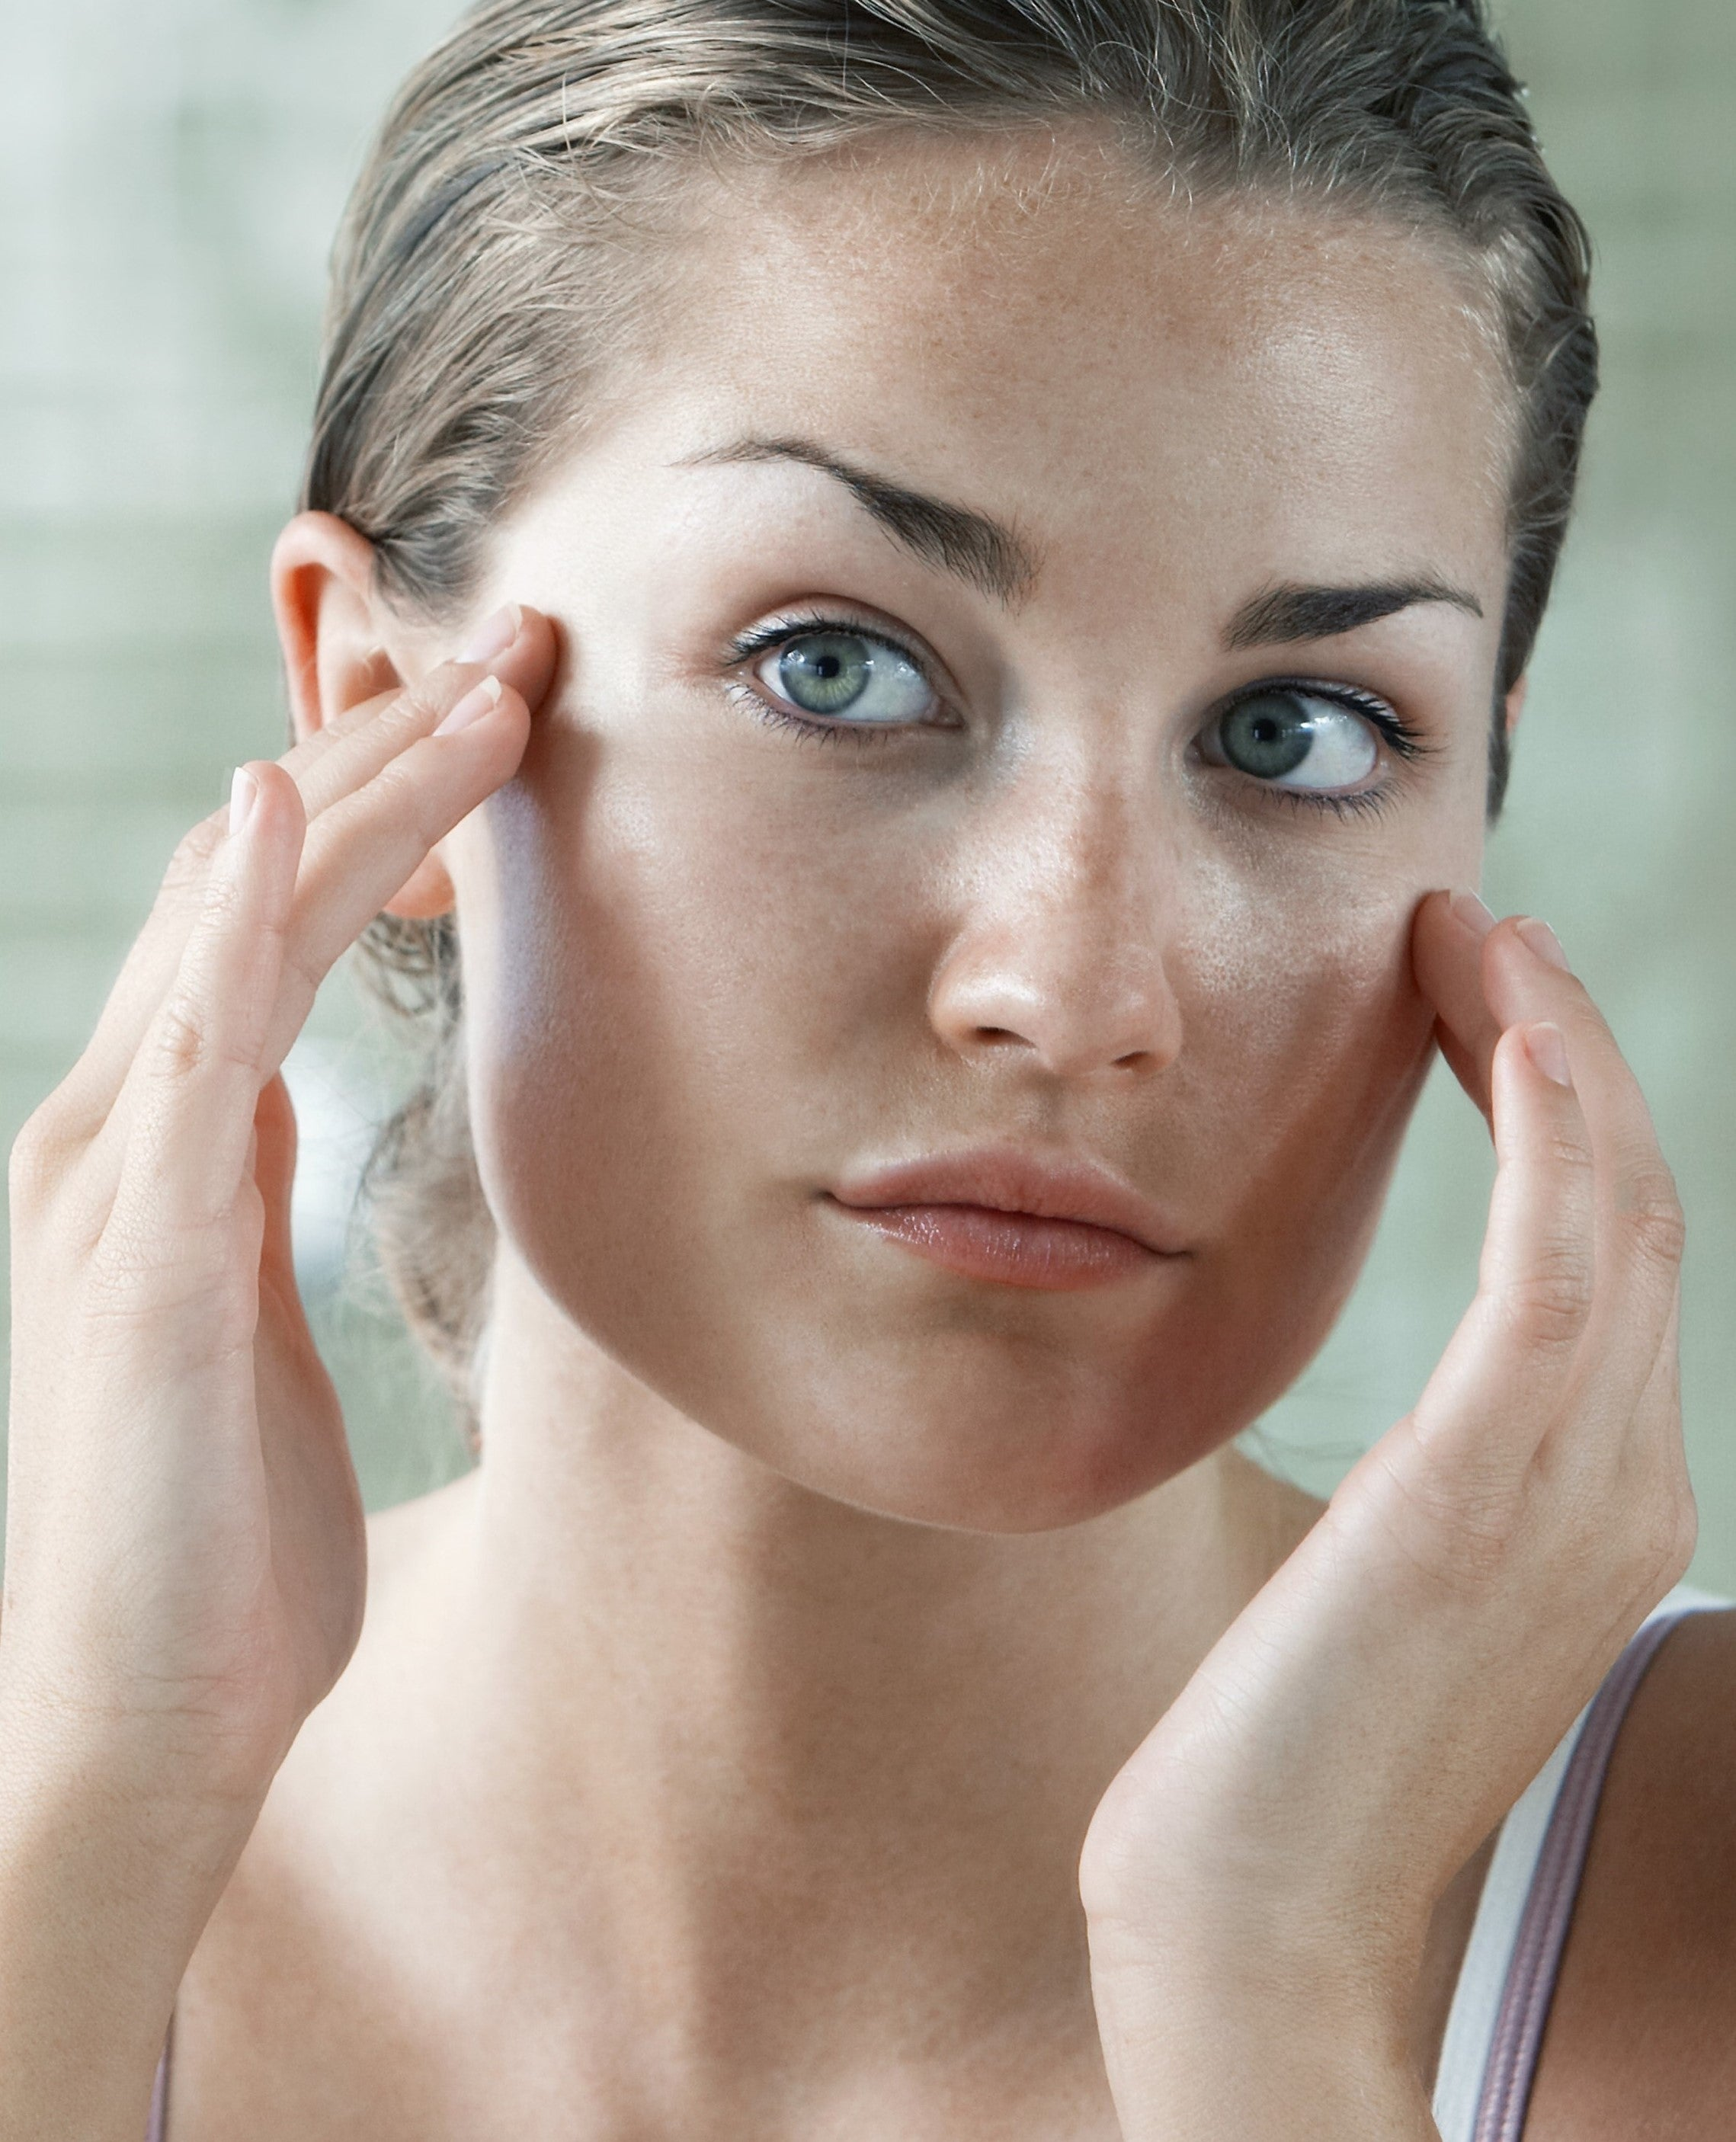 glycolic acid skin care products and how to tell if they are working